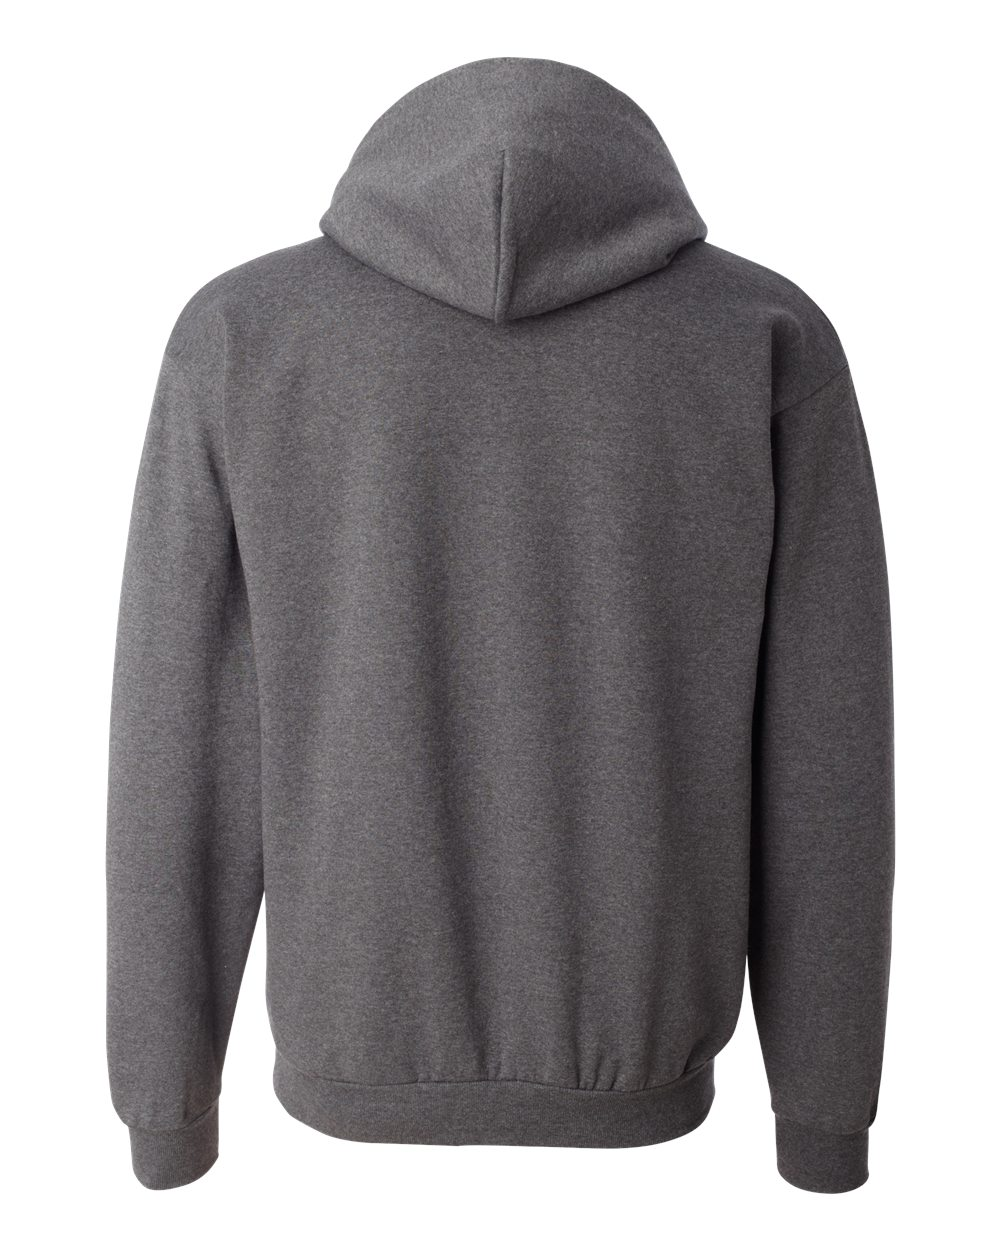 Champion-Mens-Double-Dry-Eco-Hooded-Sweatshirt-Hoodie-Pullover-S700-up-to-3XL miniature 10